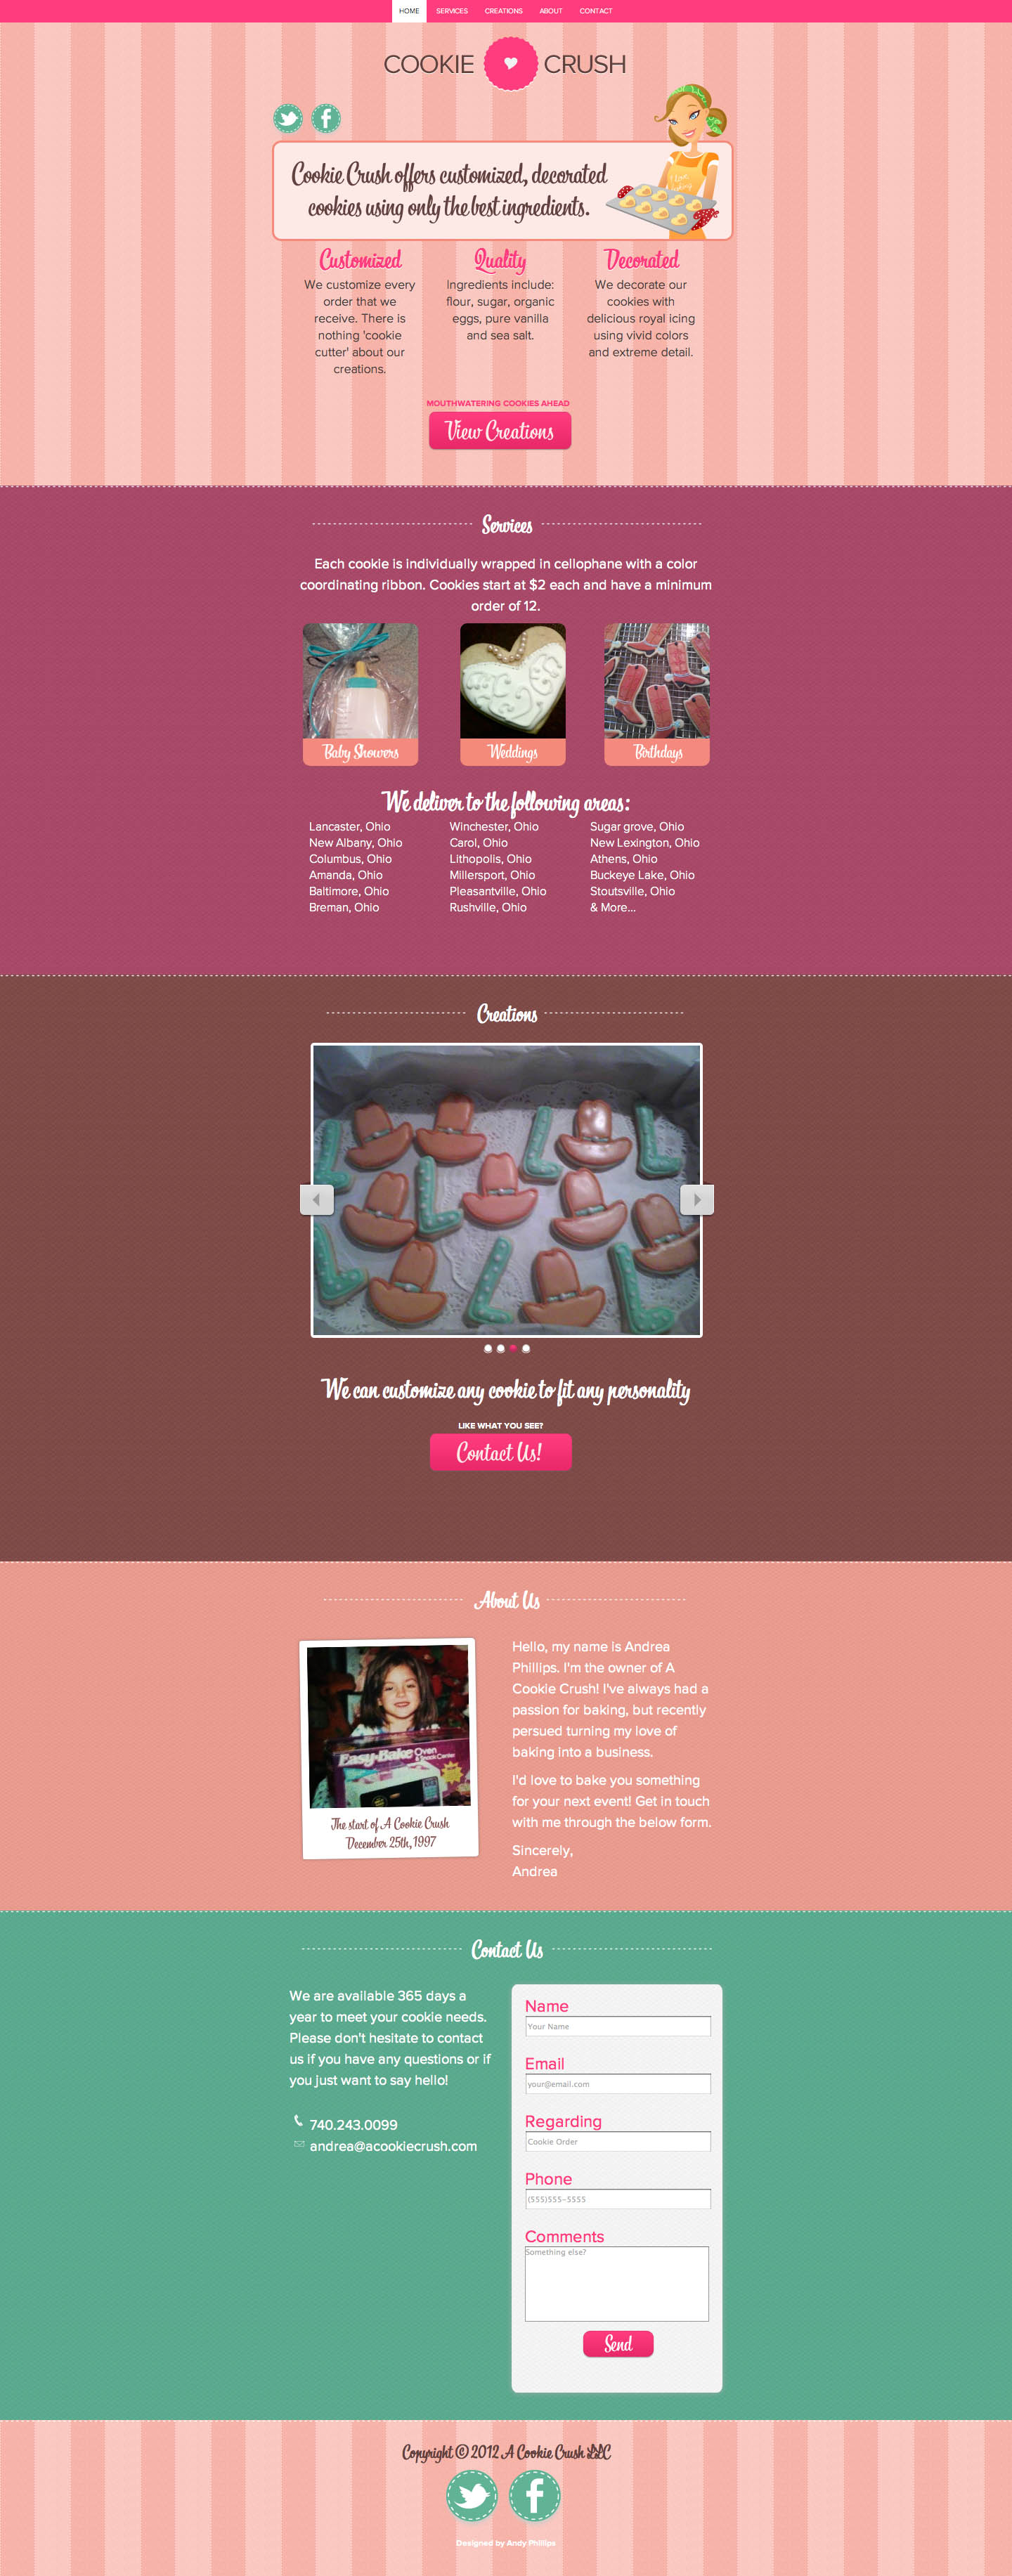 Cookie Crush Website Screenshot